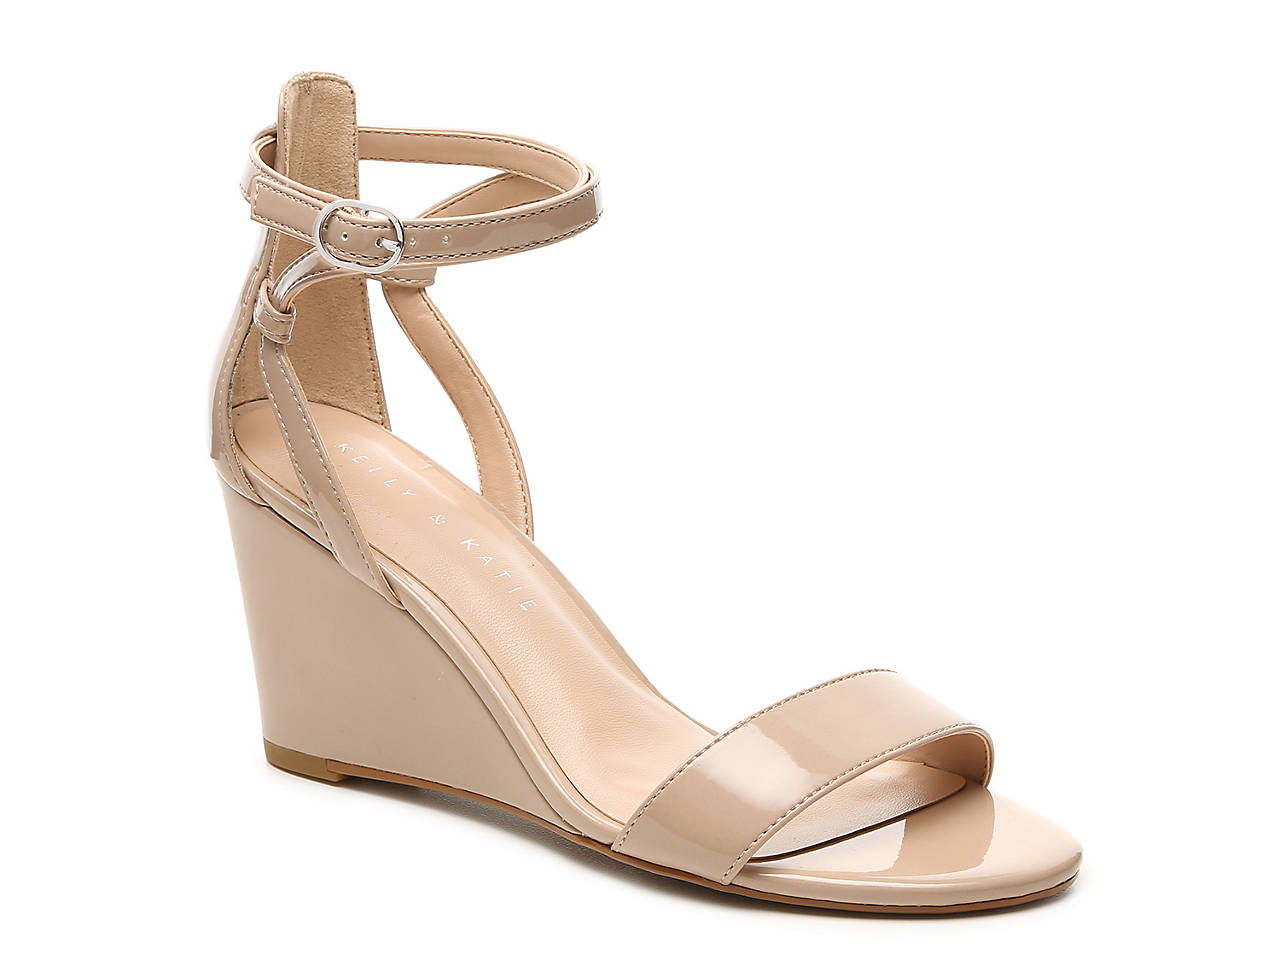 Kelly & Katie Tamra Wedge Sandal Women's Shoes | DSW